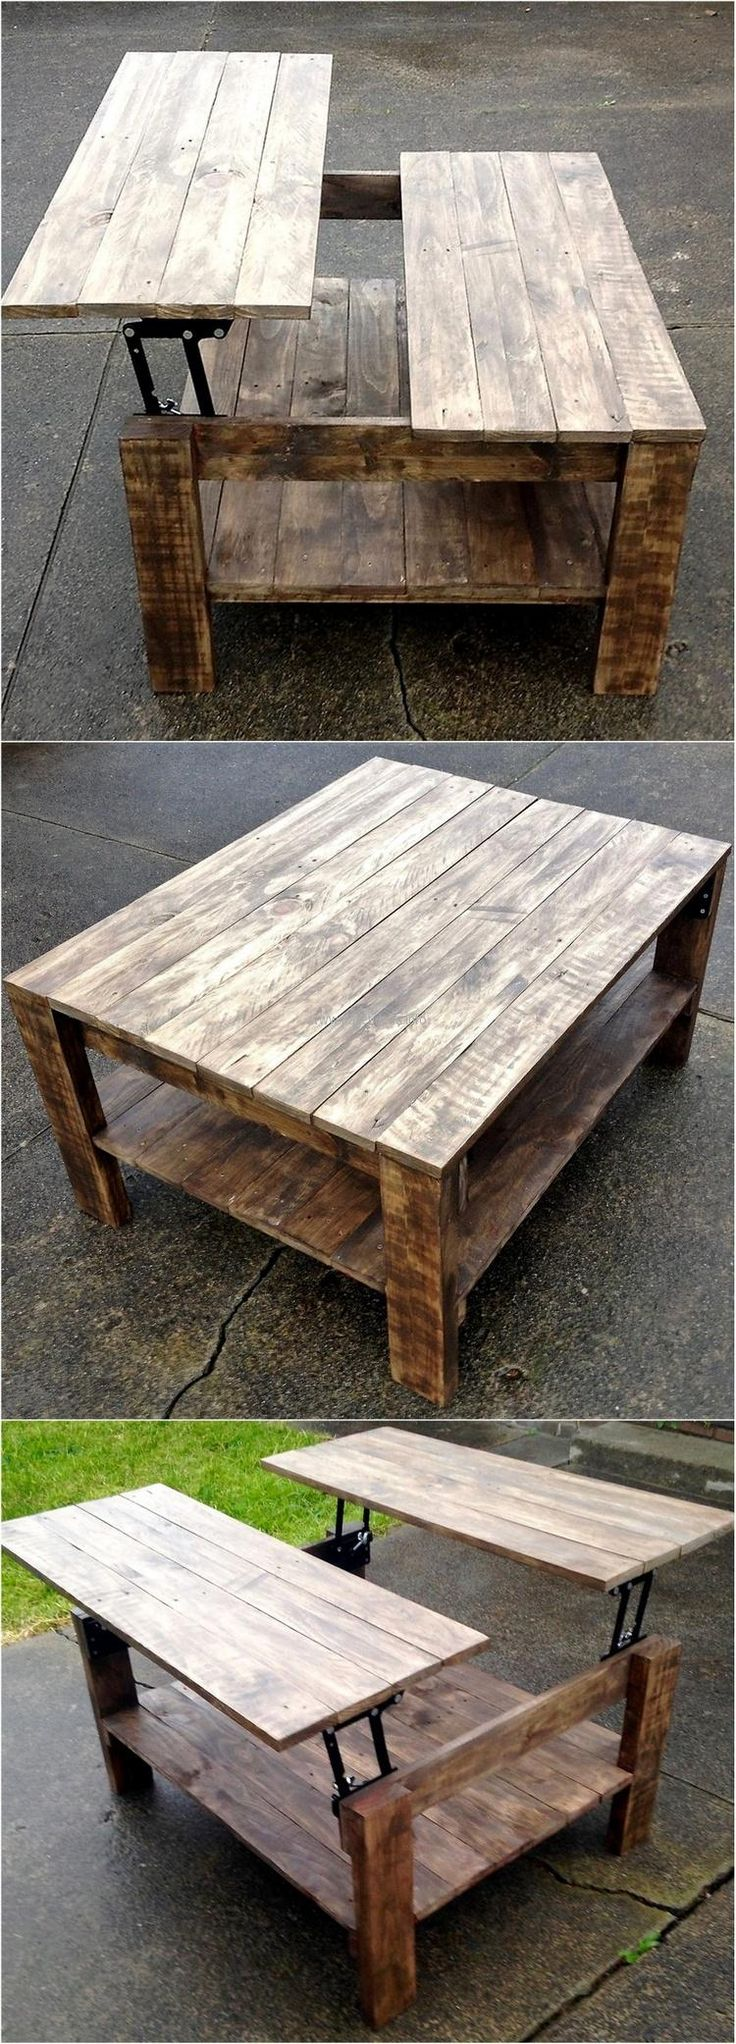 wood pallets furniture. ingenious ideas for wooden pallet reusing wood pallets furniture